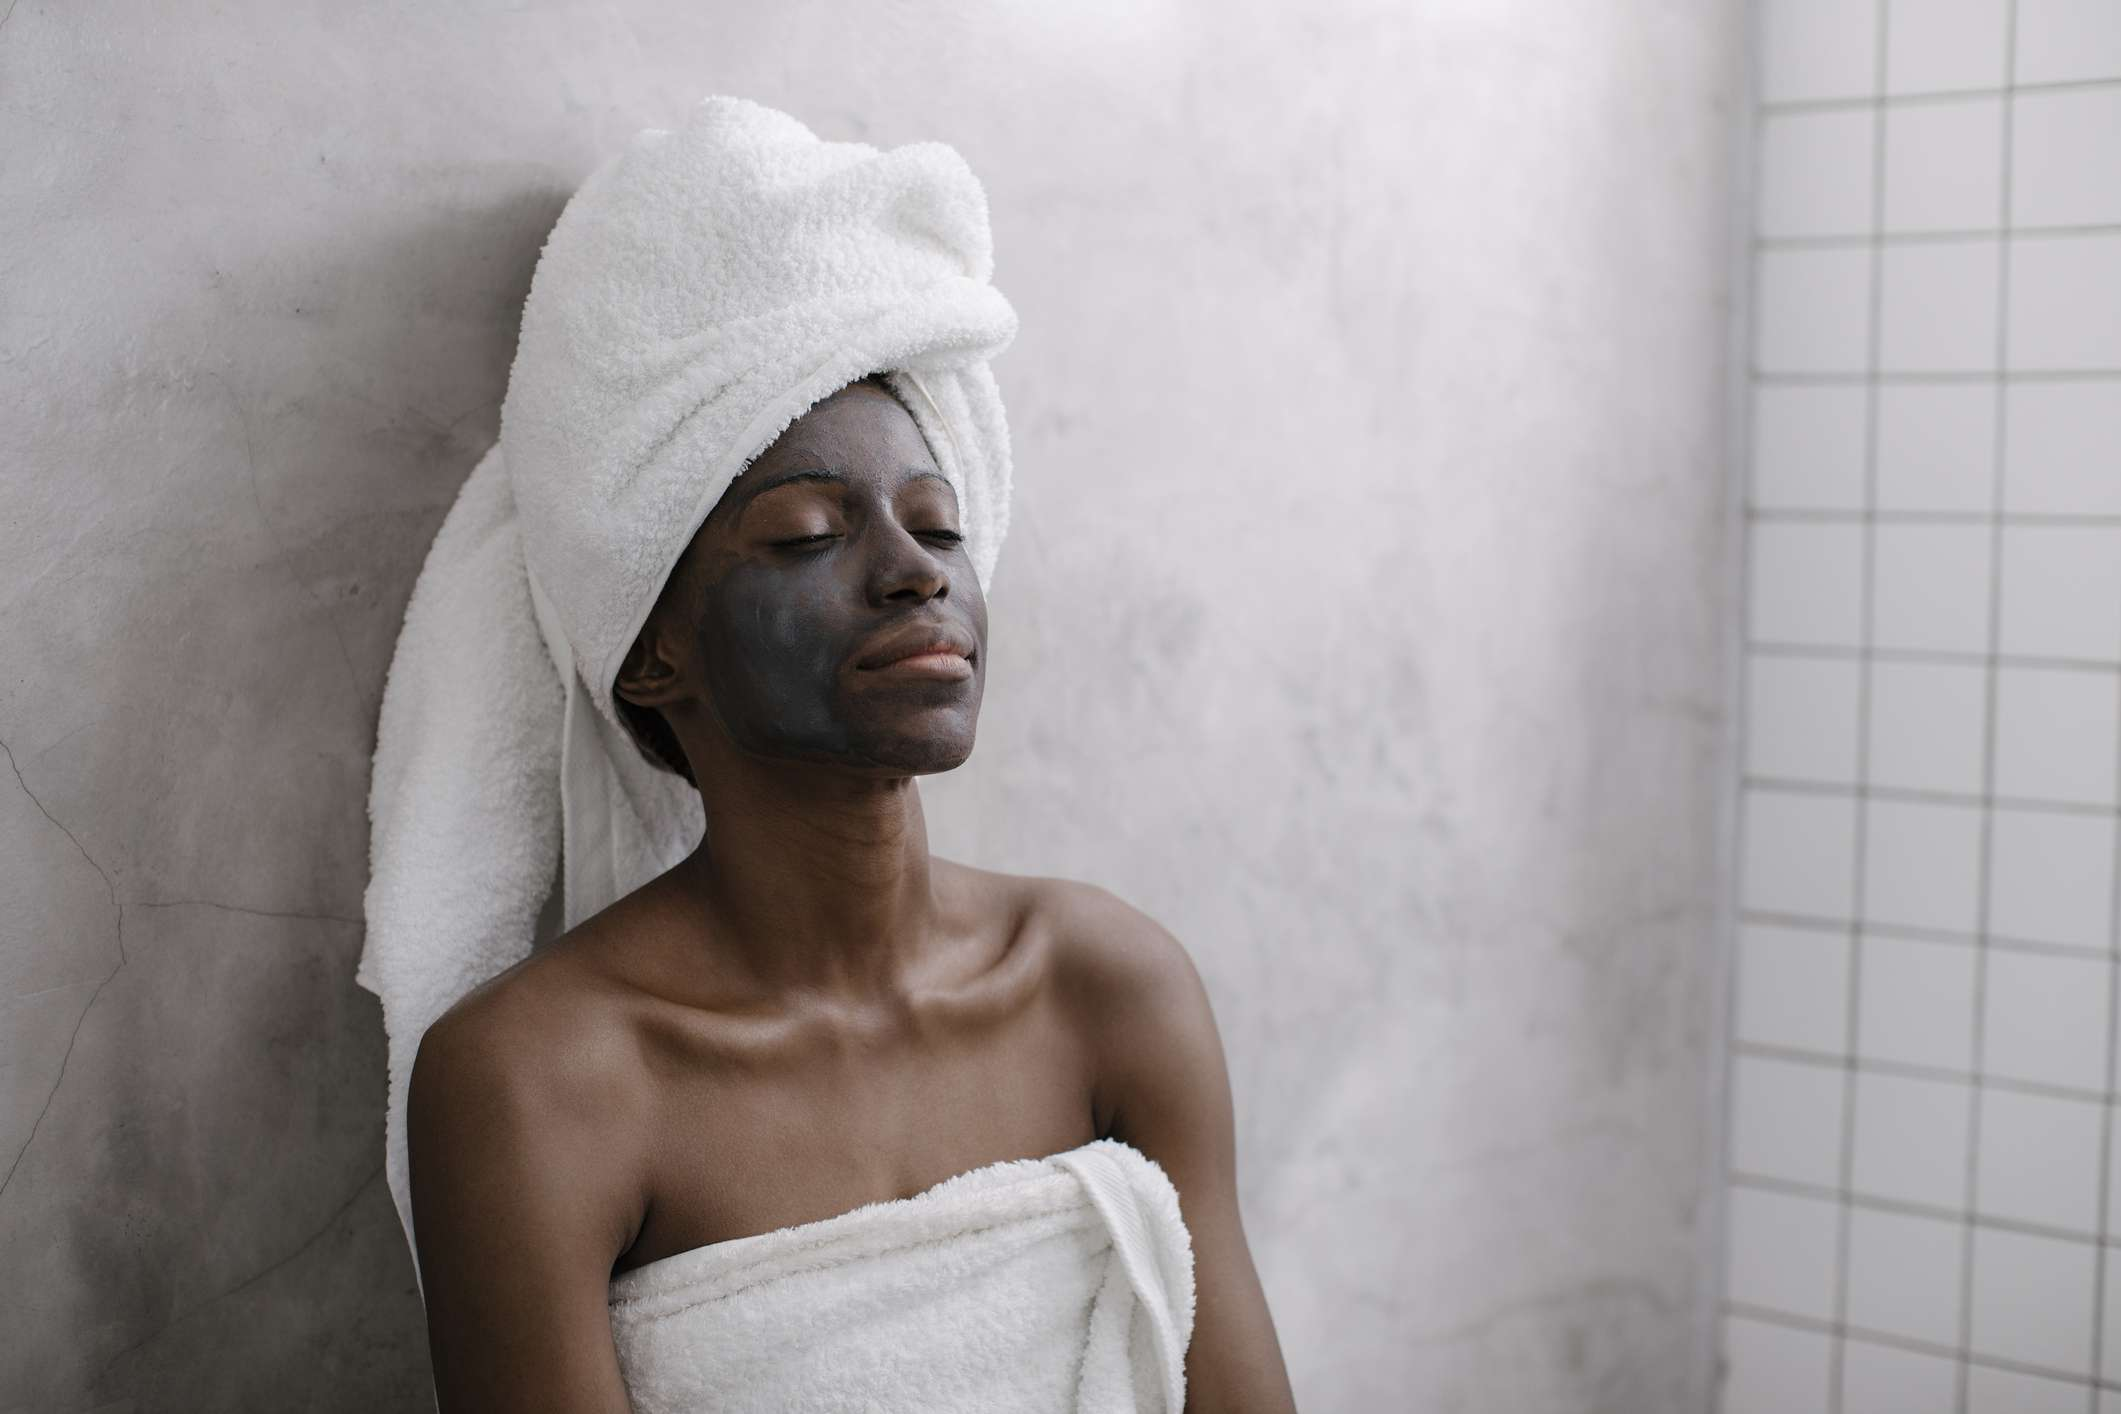 A black woman wearing a charcoal facial mask in the shower.